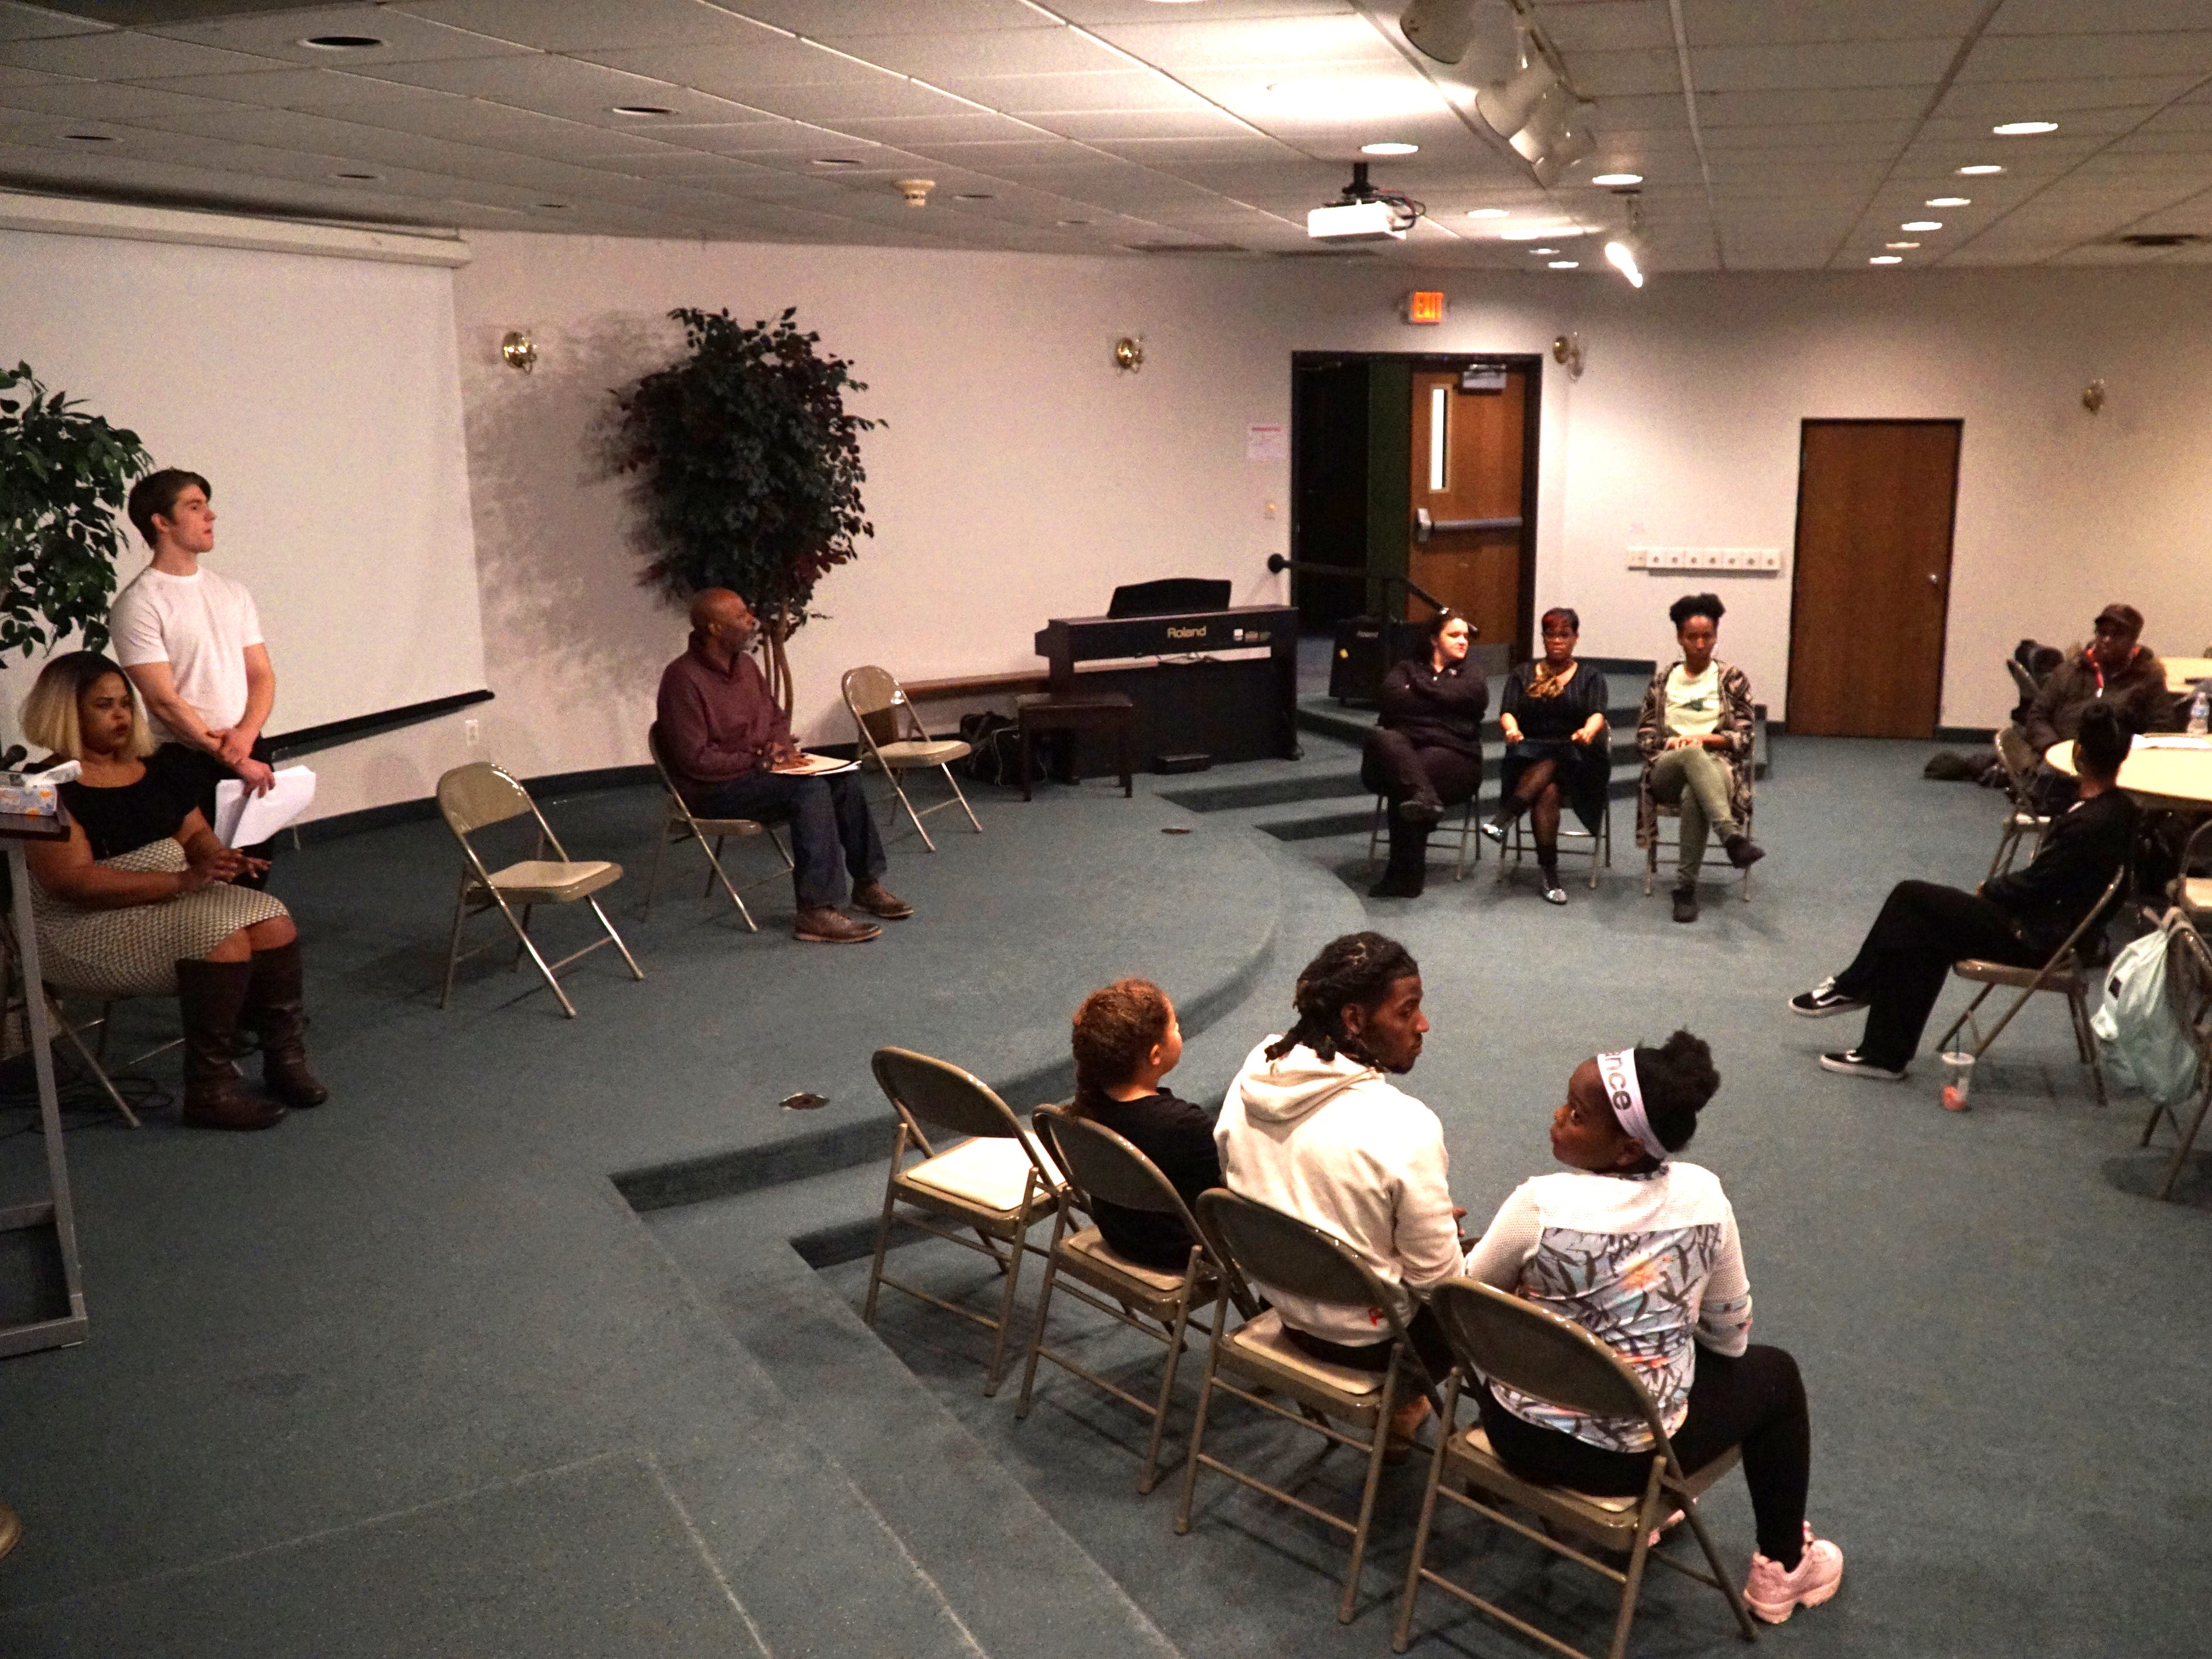 Beard's play #Listen takes over the basement meeting room of the Hilltop Church of the Nazarene on March 11.